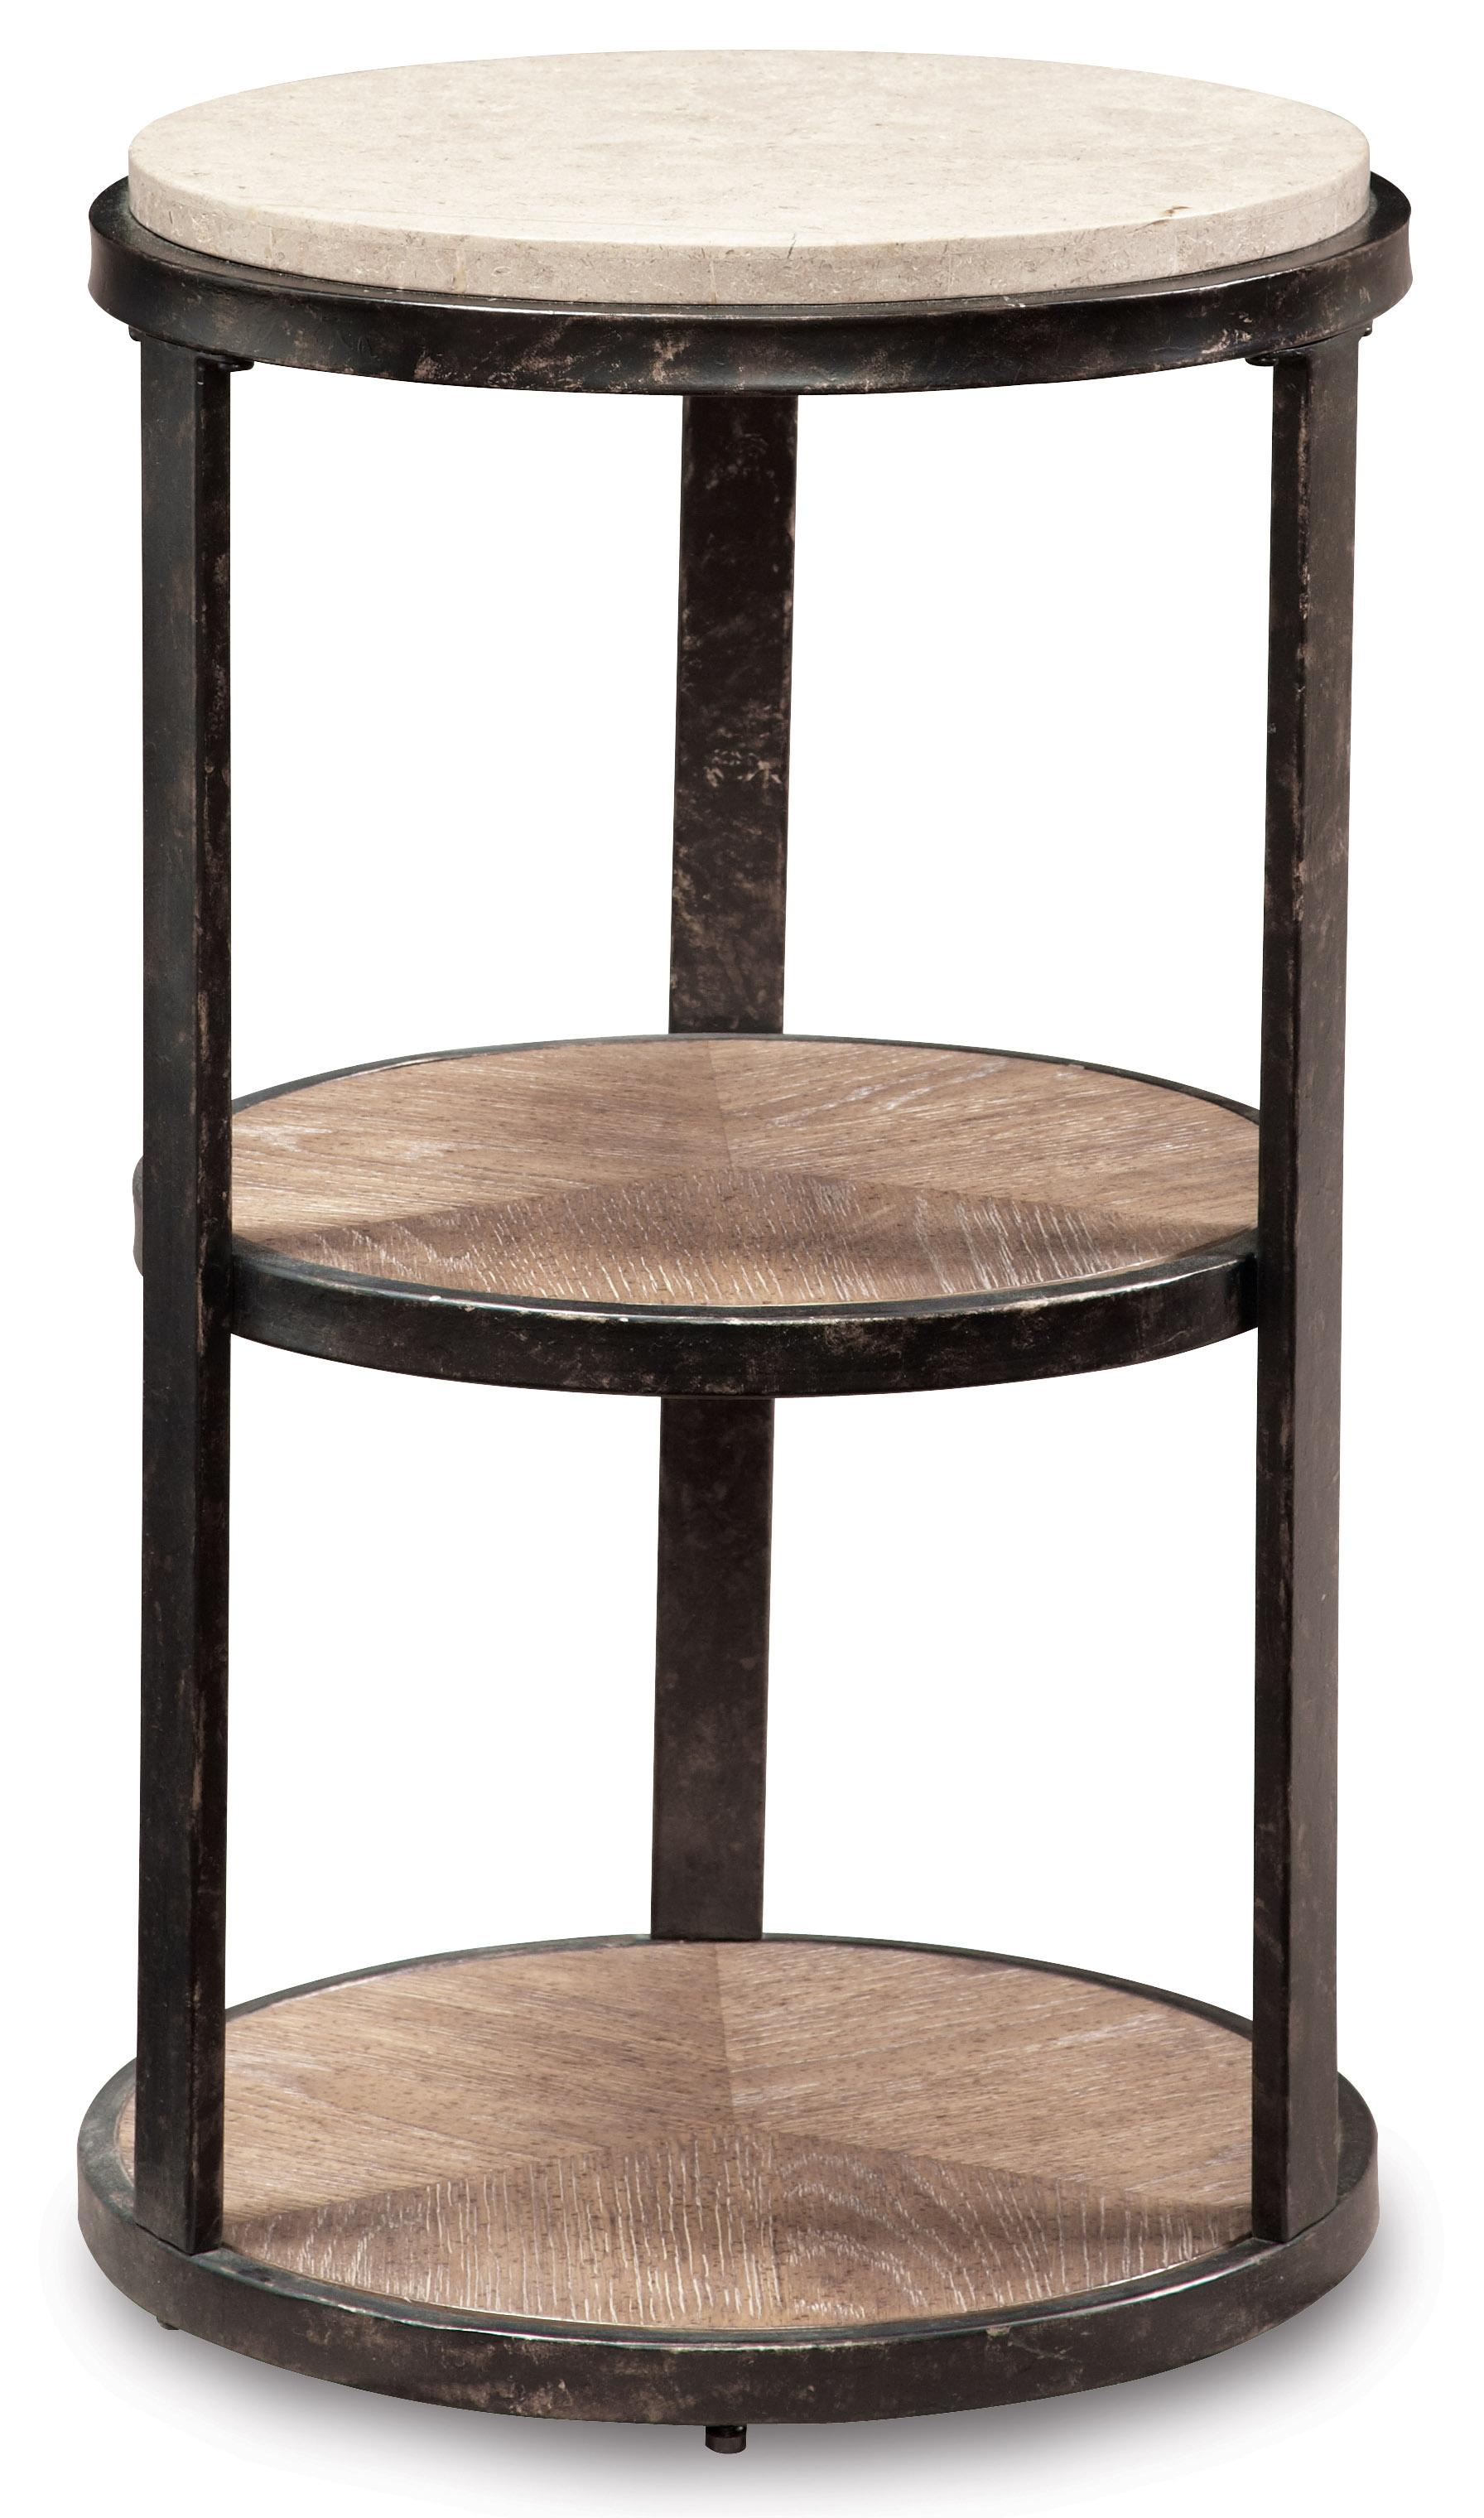 square black distressed wood pedestal diy round unfinished table end base accent small target tables outstanding large oak white tall antique vintage full size safavieh couture